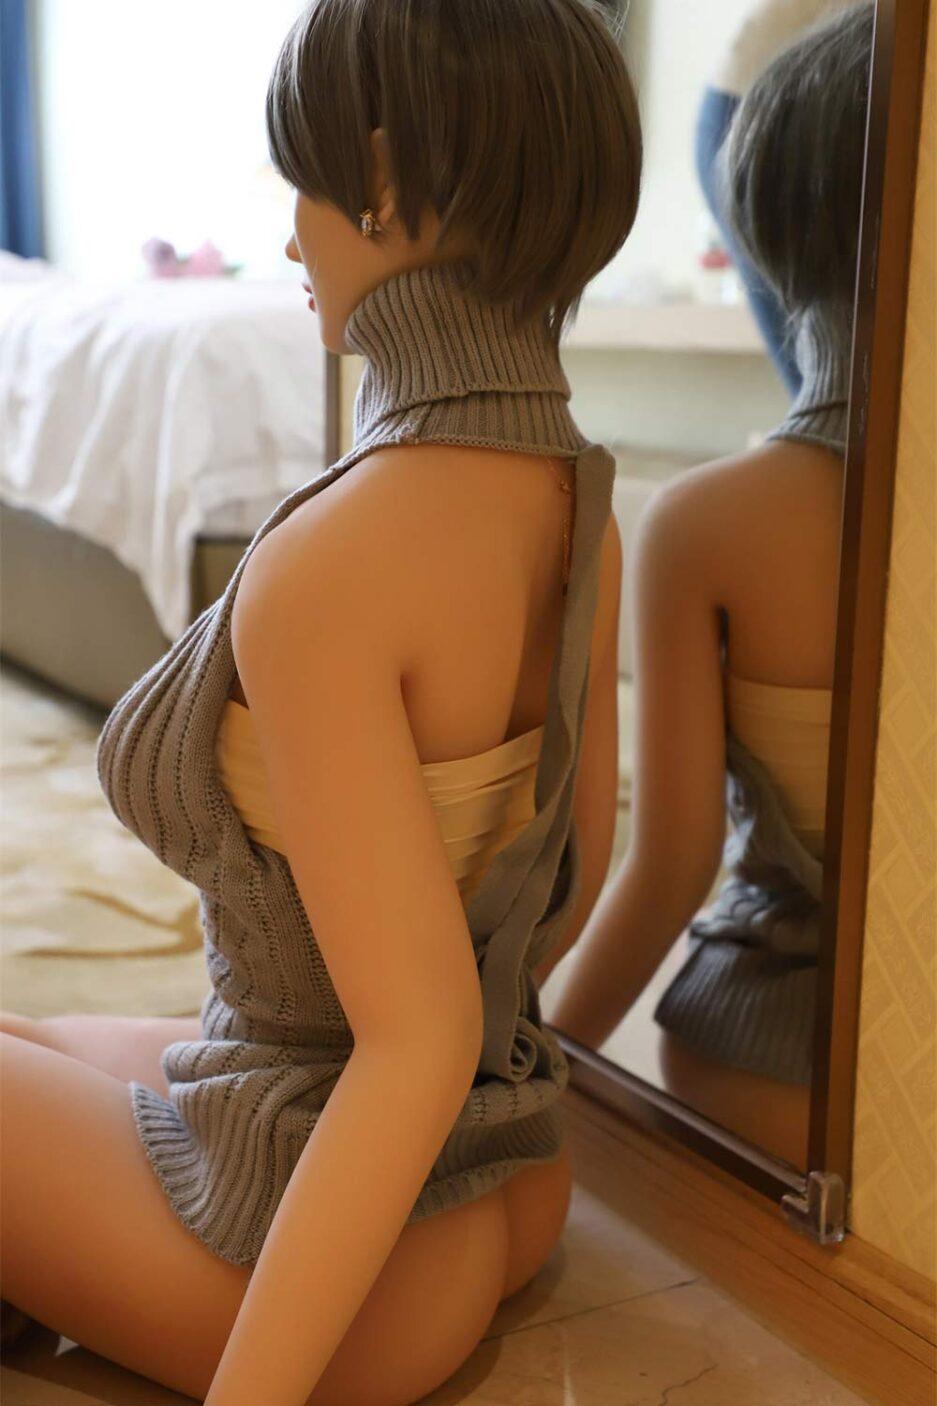 Silicone sex doll in gray clothes